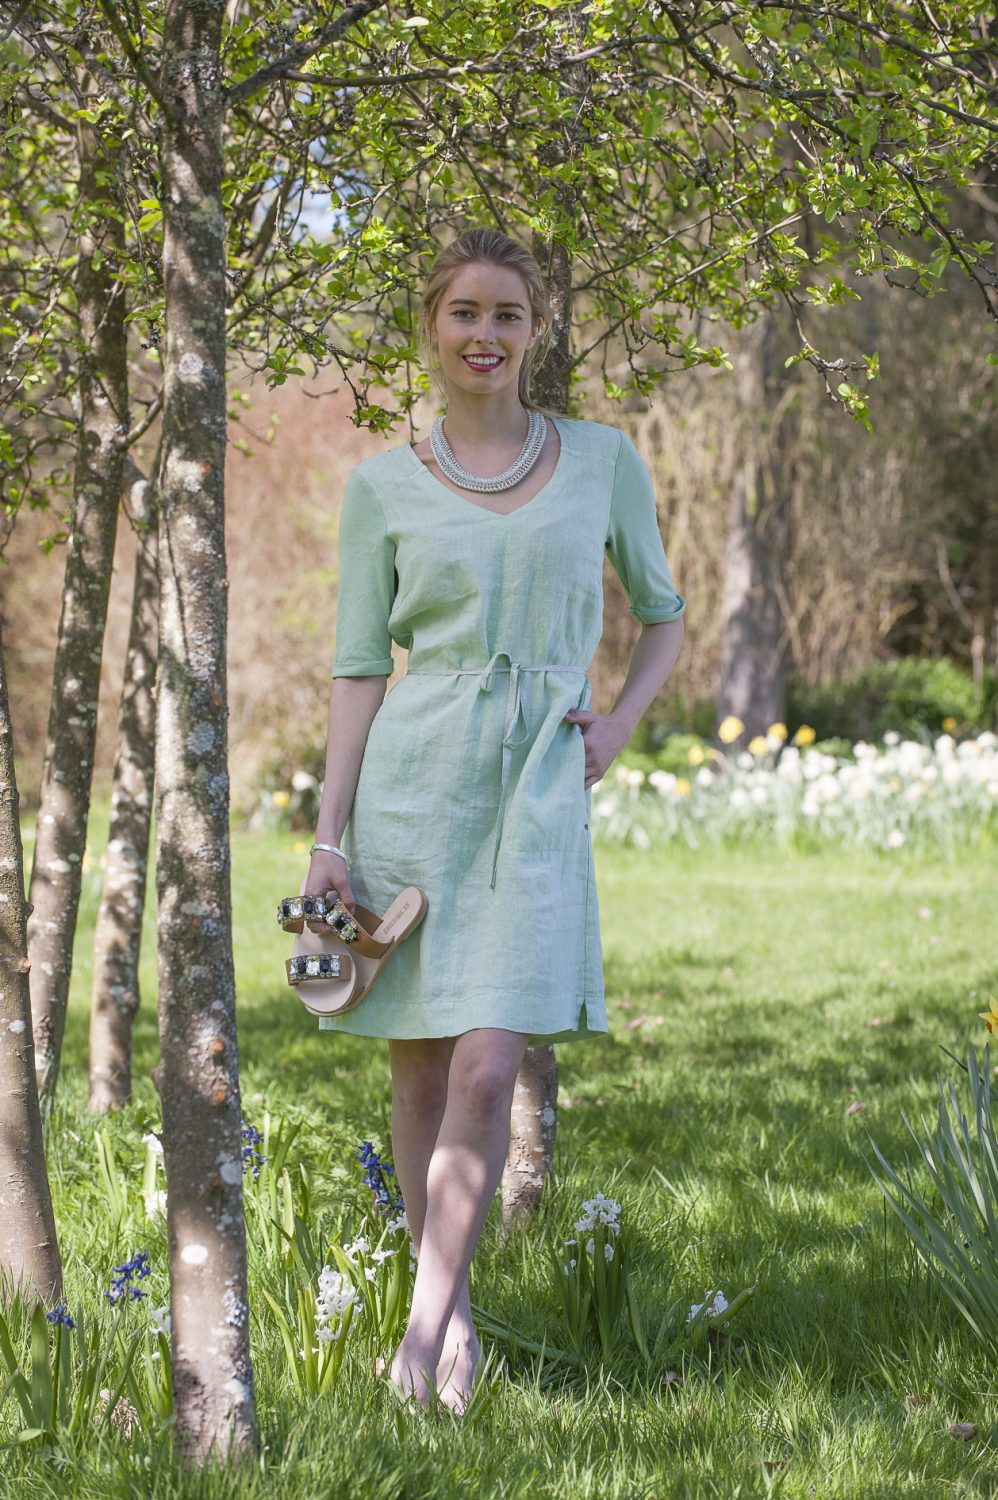 Sandwich linen dress, £92, Darcey, Heathfield & Lewes 0800 111 4974 www.darcey.co.uk; Sol Sana jewelled sandals, £64.99, Second Female necklace, £45, Odyl, Cranbrook 01580 714907 www.odyl.co.uk; bracelet, Amy's own